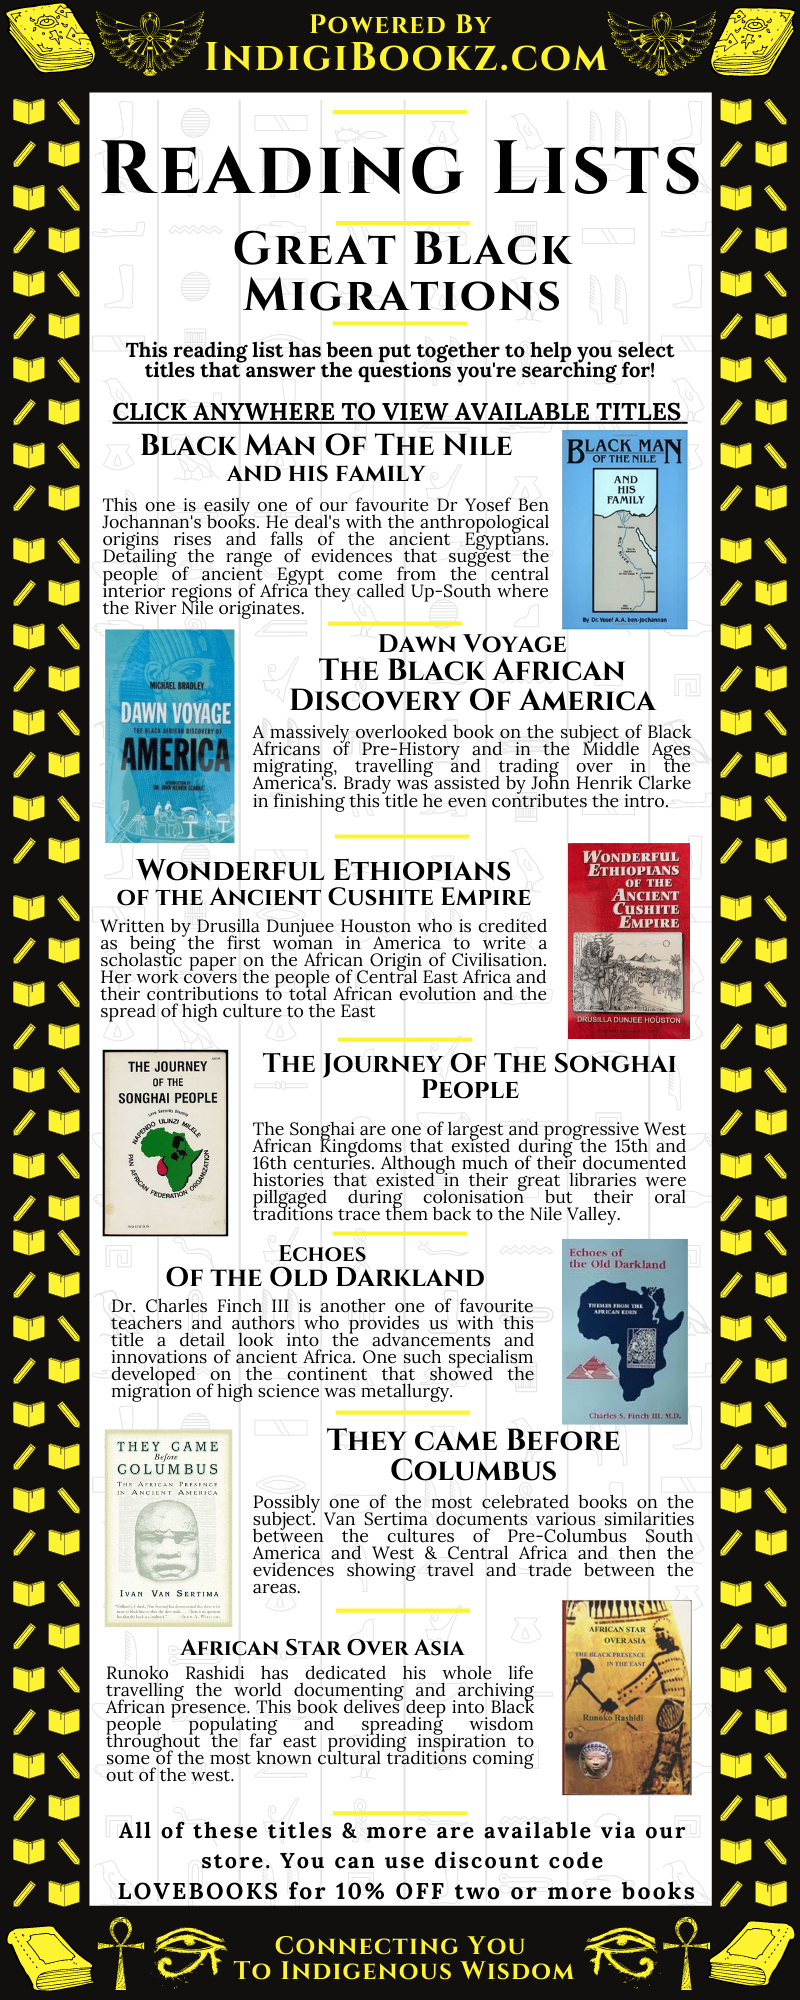 Black History Reading Lists: Great Black Migrations